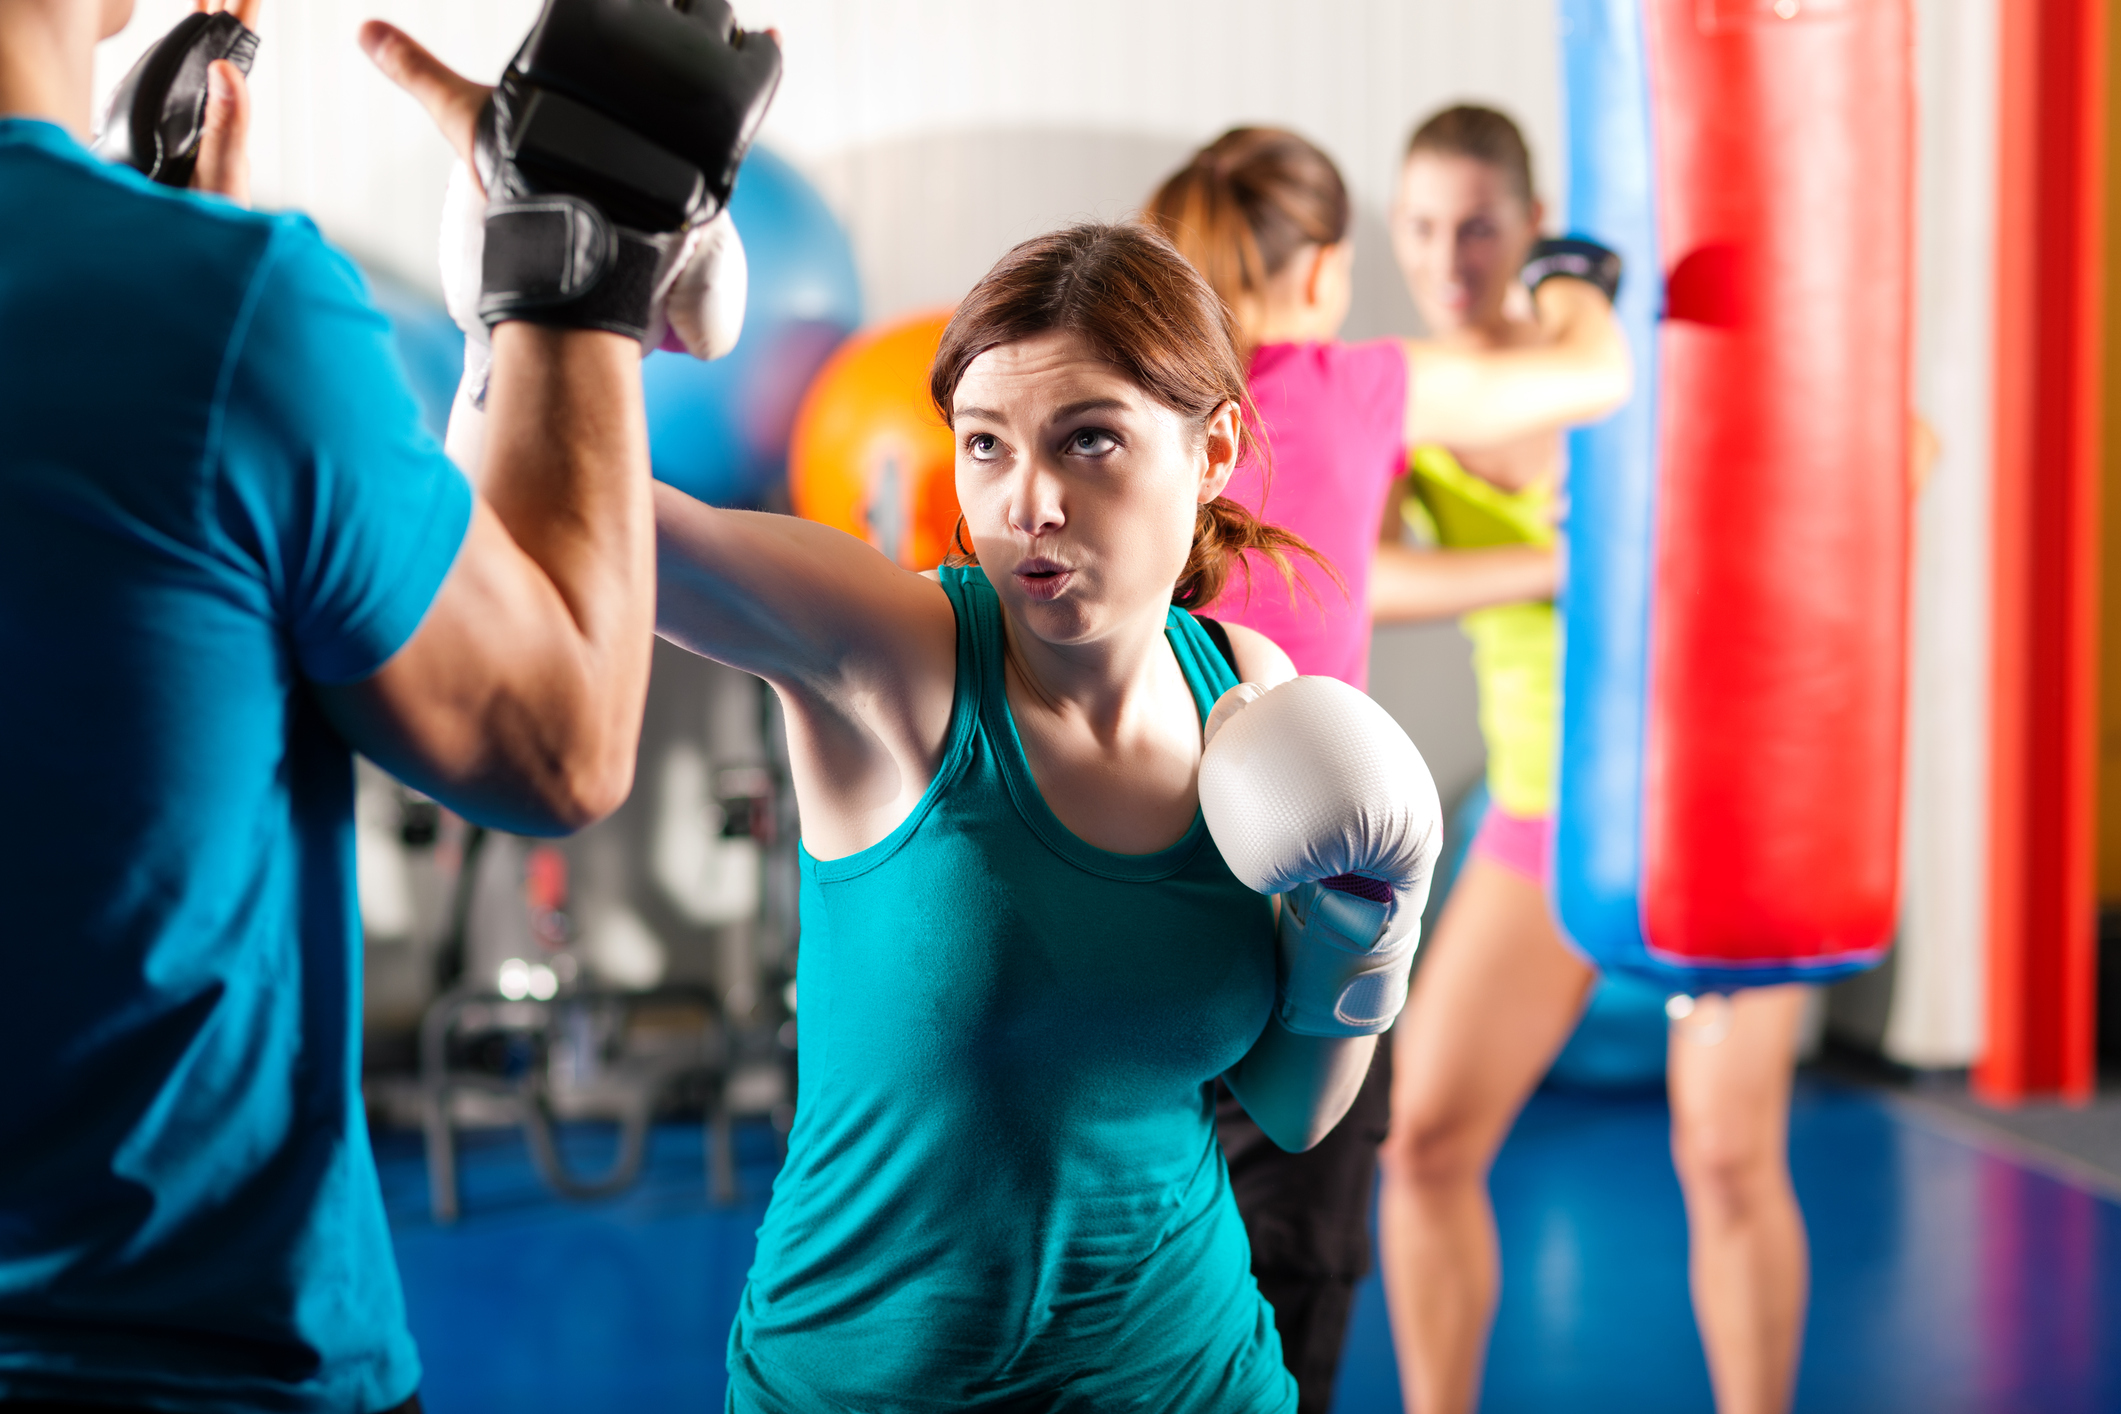 Boxing / Unarmed Combat - Boxing training greatly improves your cardiovascular health while increasing core strength. It also decreases stress and improves hand eye coordination.